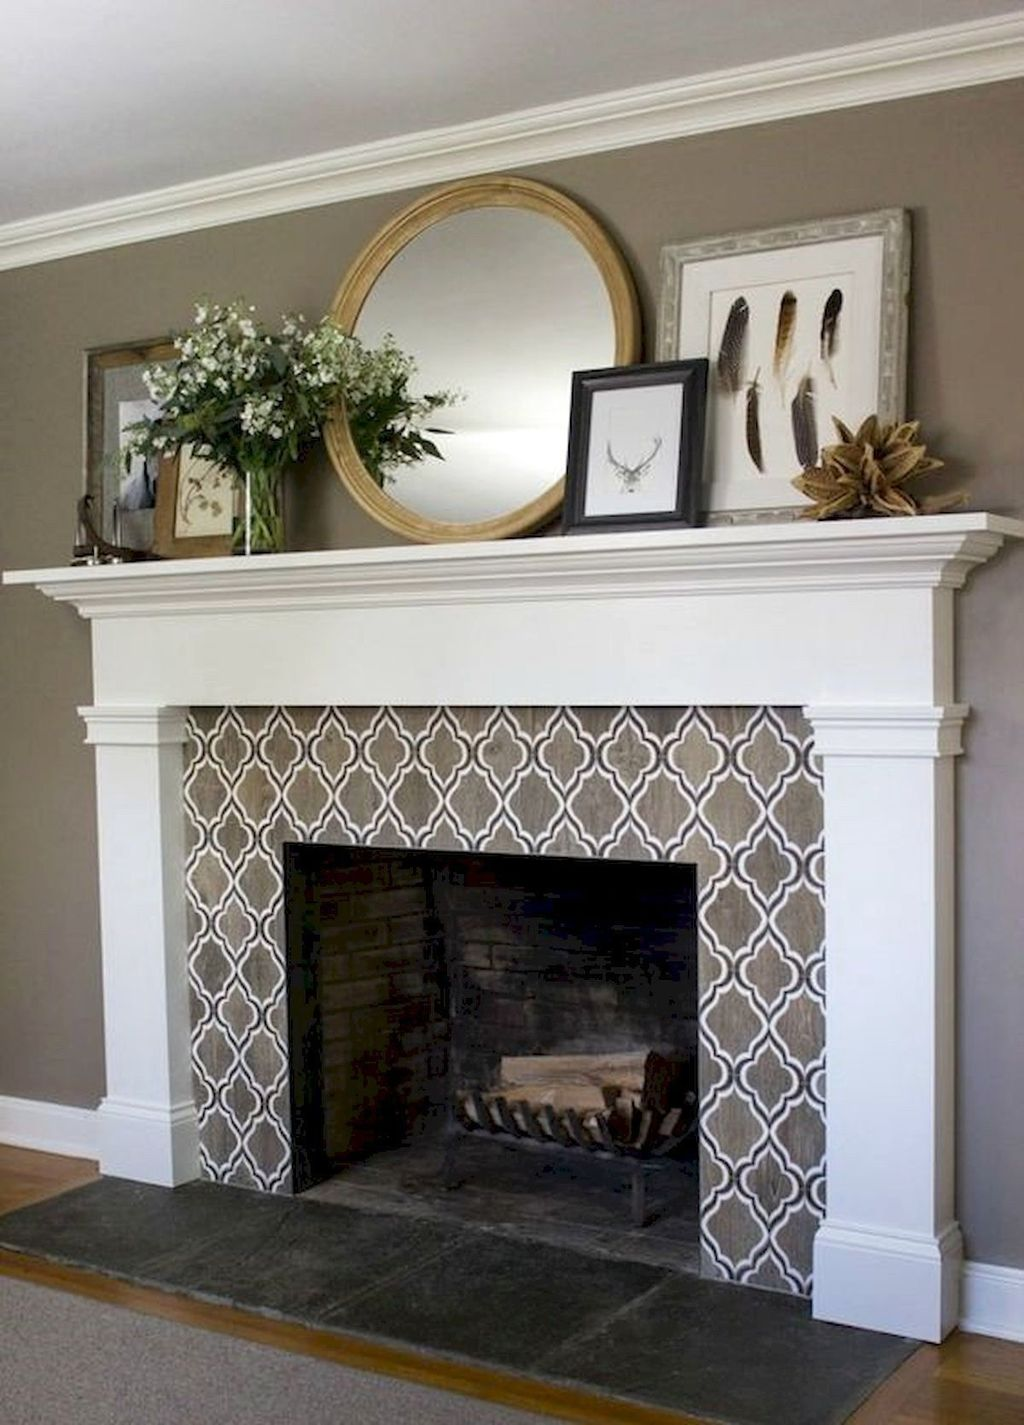 Stunning Fireplace Mantel Decor Ideas You Should Copy Now 02